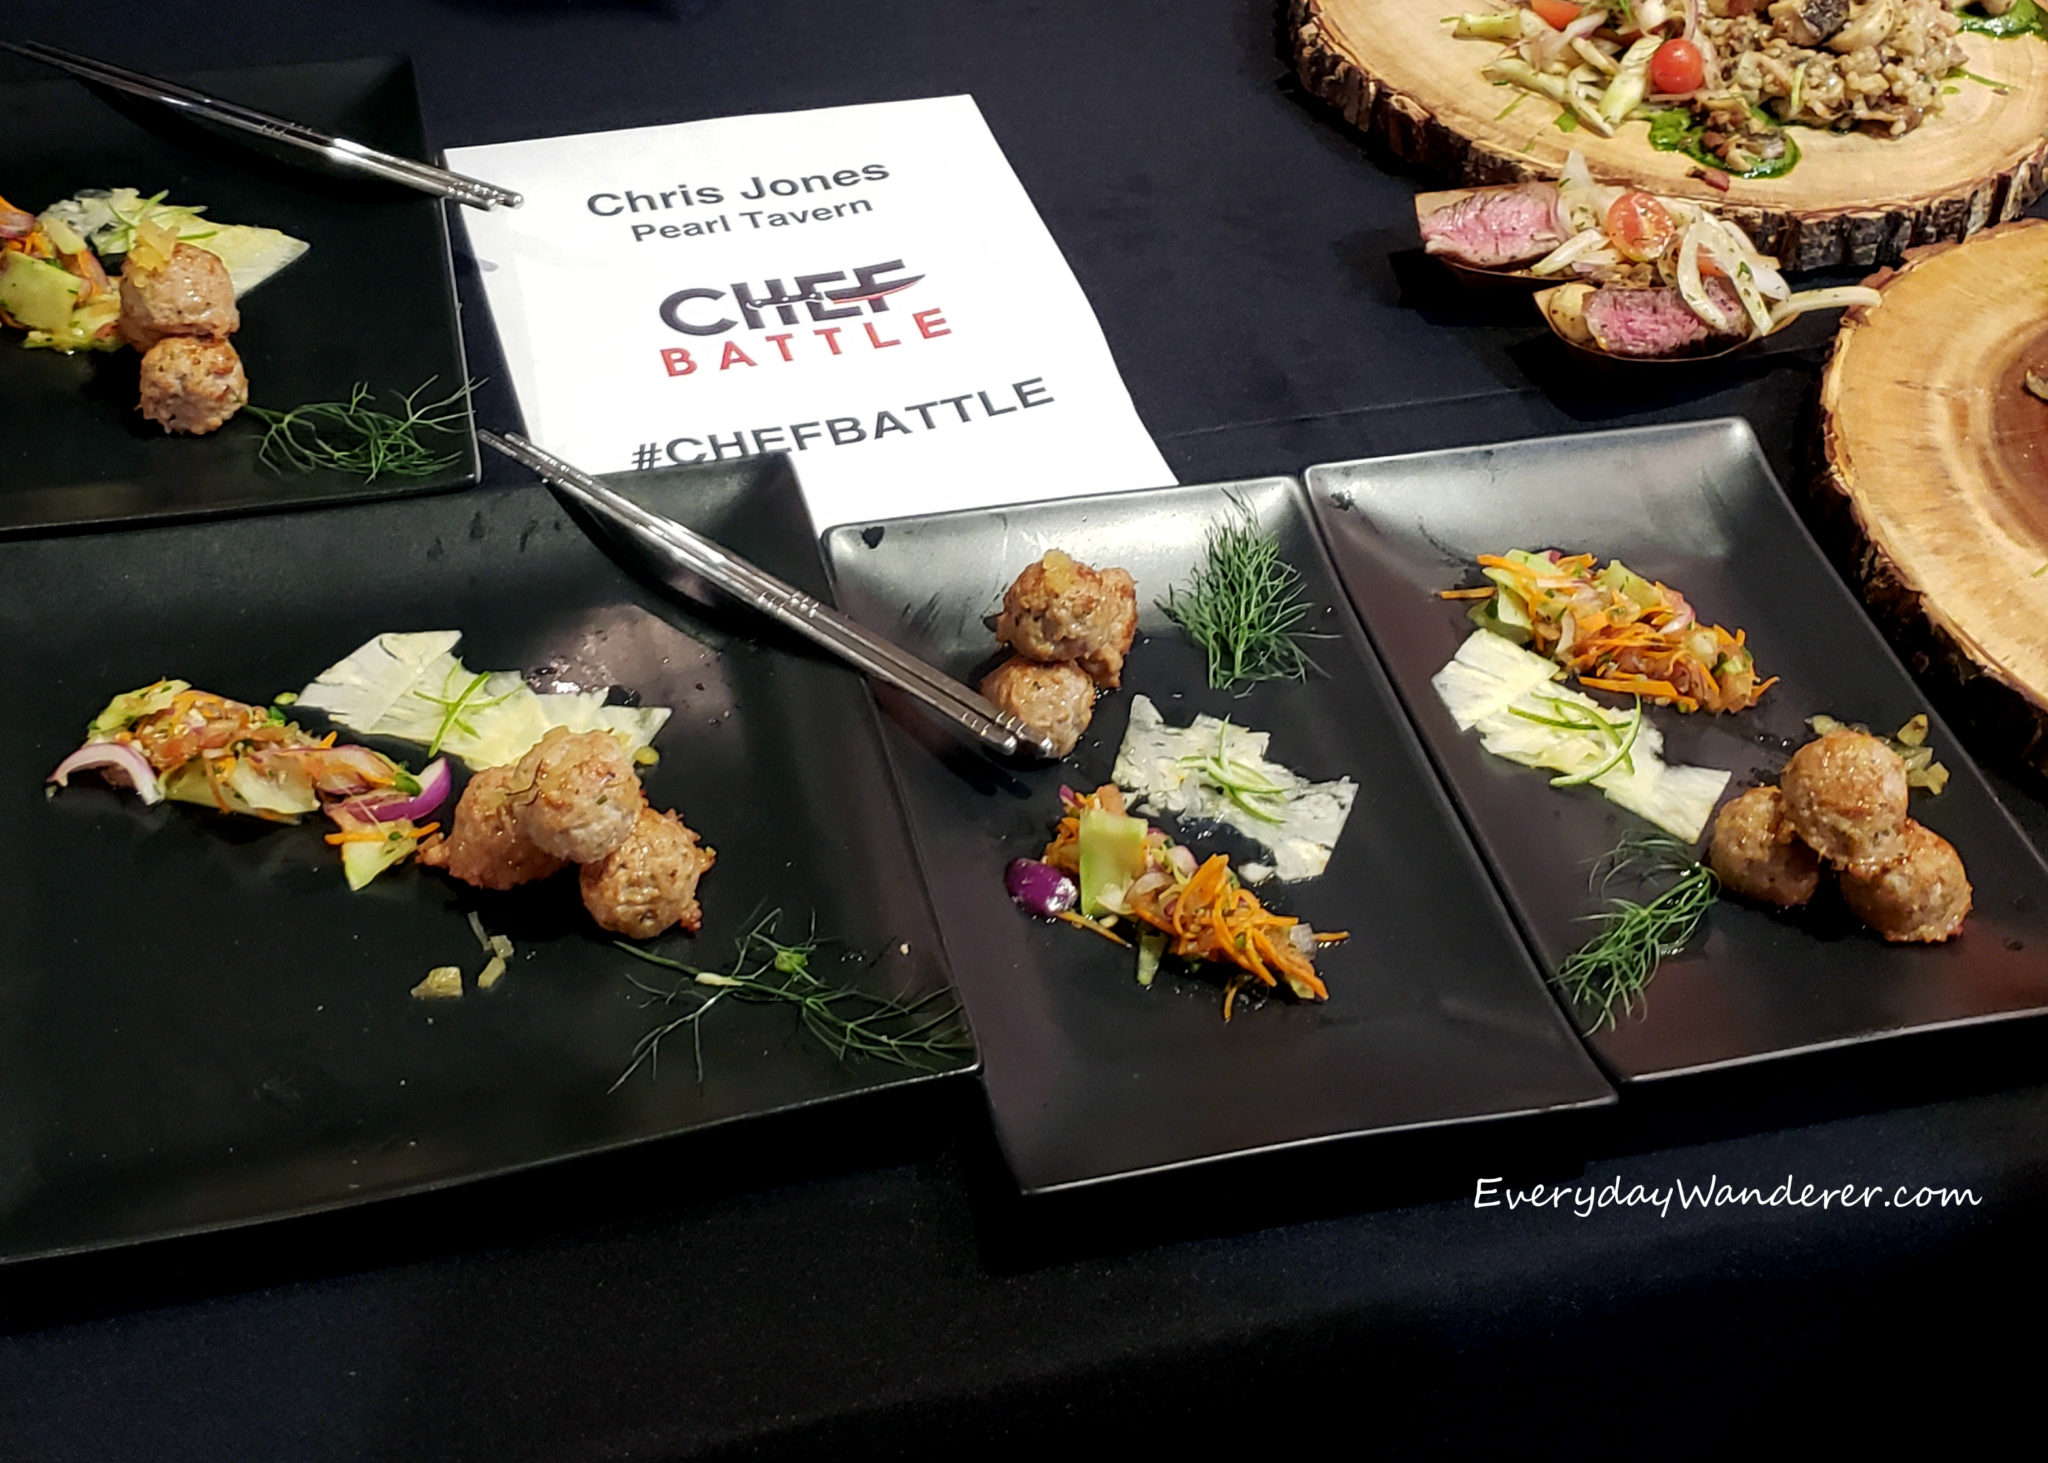 What to Expect at a Chef Battle